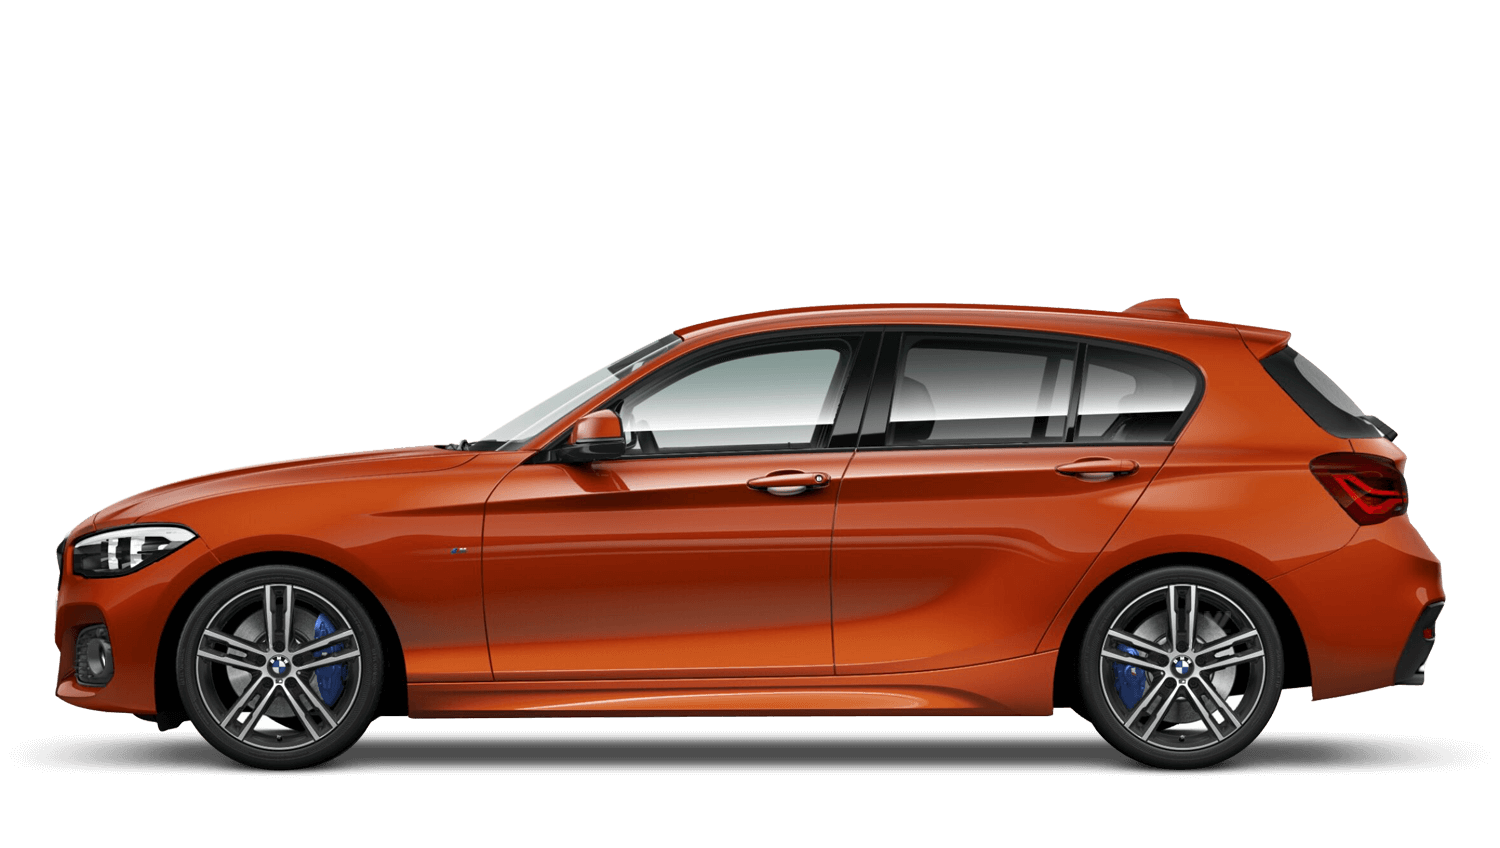 bmw 1 series 5 door m sport shadow edition finance available barons chandlers bmw. Black Bedroom Furniture Sets. Home Design Ideas